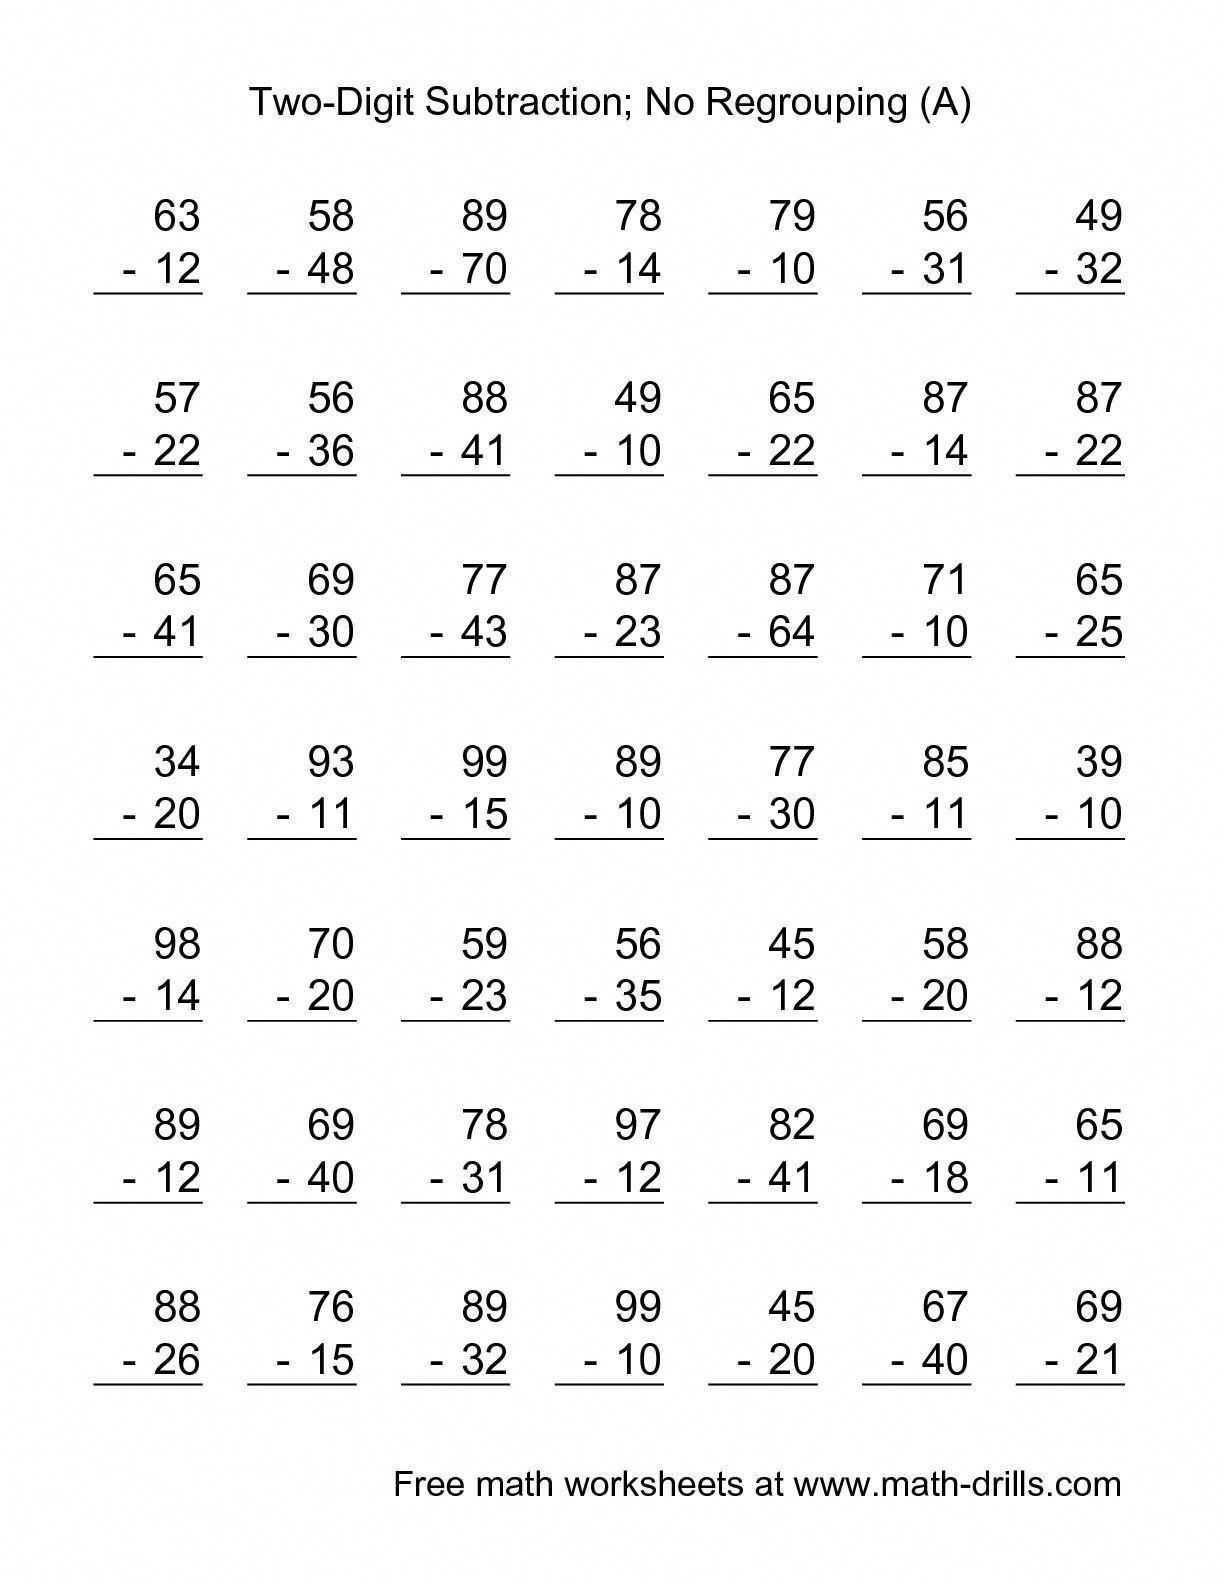 3 Worksheets Dividing By 2 Digit Numbers The Two Digit Subtraction With No Regrouping 49 Qu Math Fact Worksheets 2nd Grade Math Worksheets Easy Math Worksheets